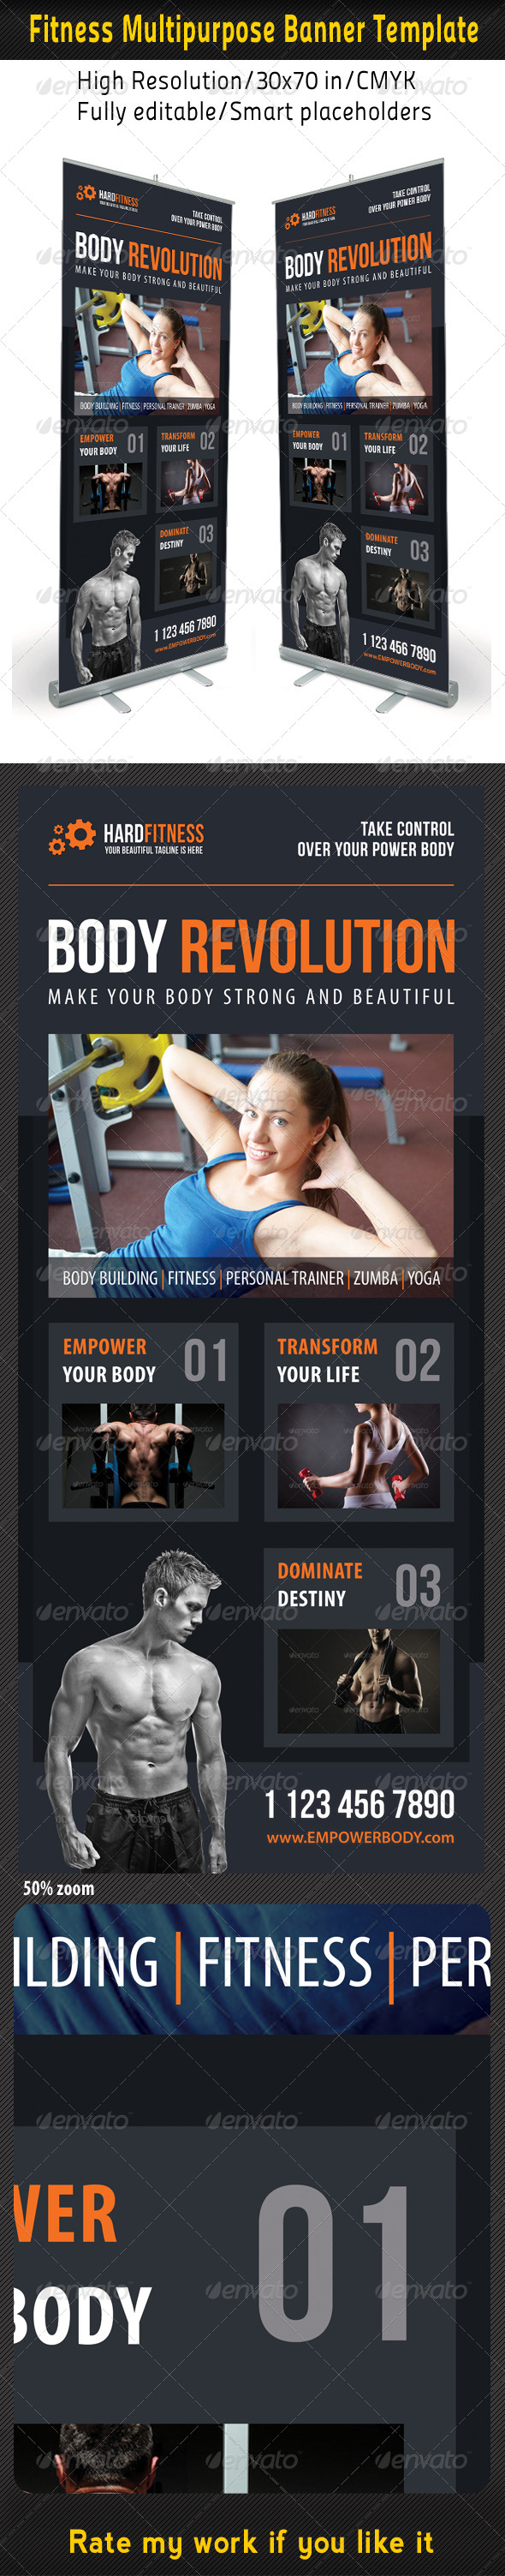 GraphicRiver Fitness Multipurpose Banner Template 15 8026789